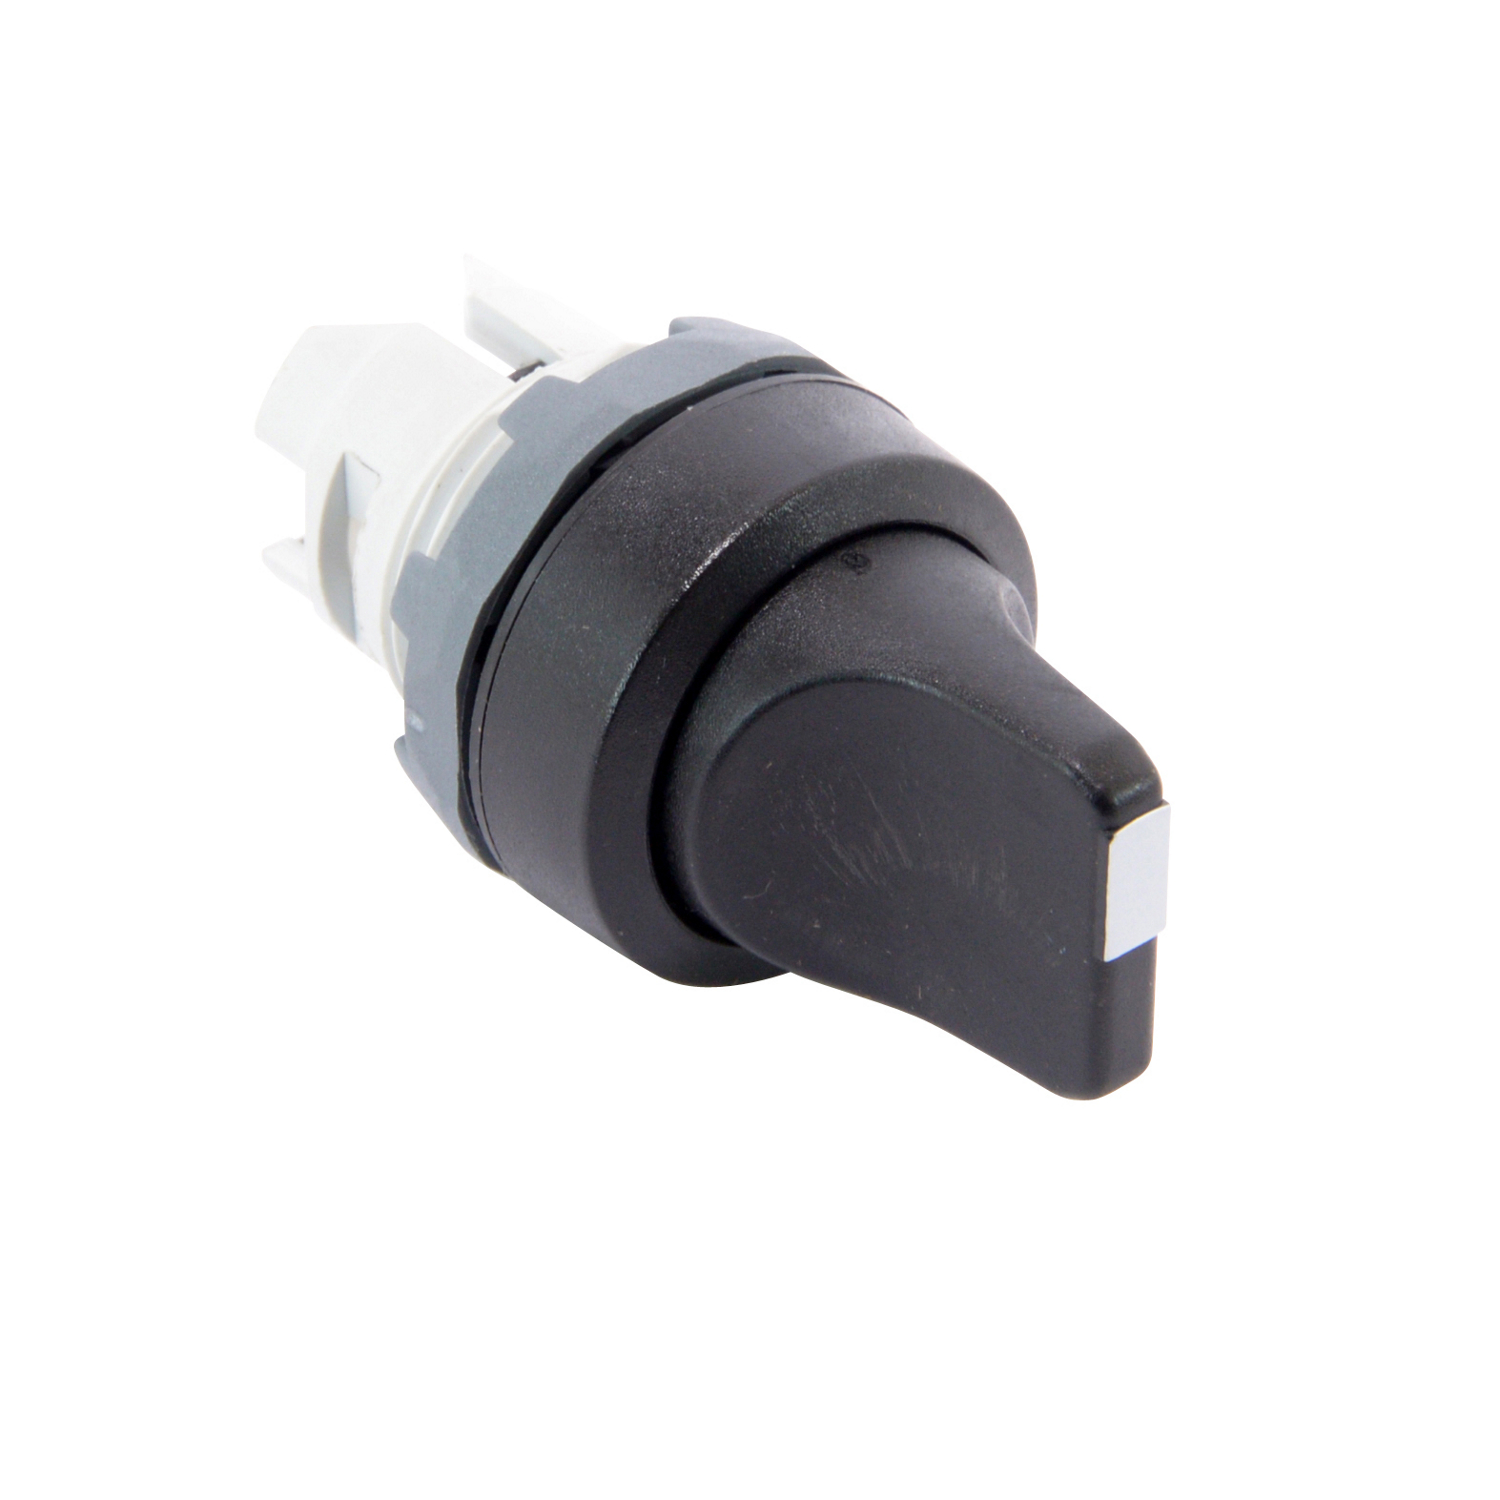 ABB M3SS2-10B Selctor Switch Modular, 3 position, momentary with spring return from A to B and from C to B, non-illuminated selector switch with black short handle. Add Holder & Contacts